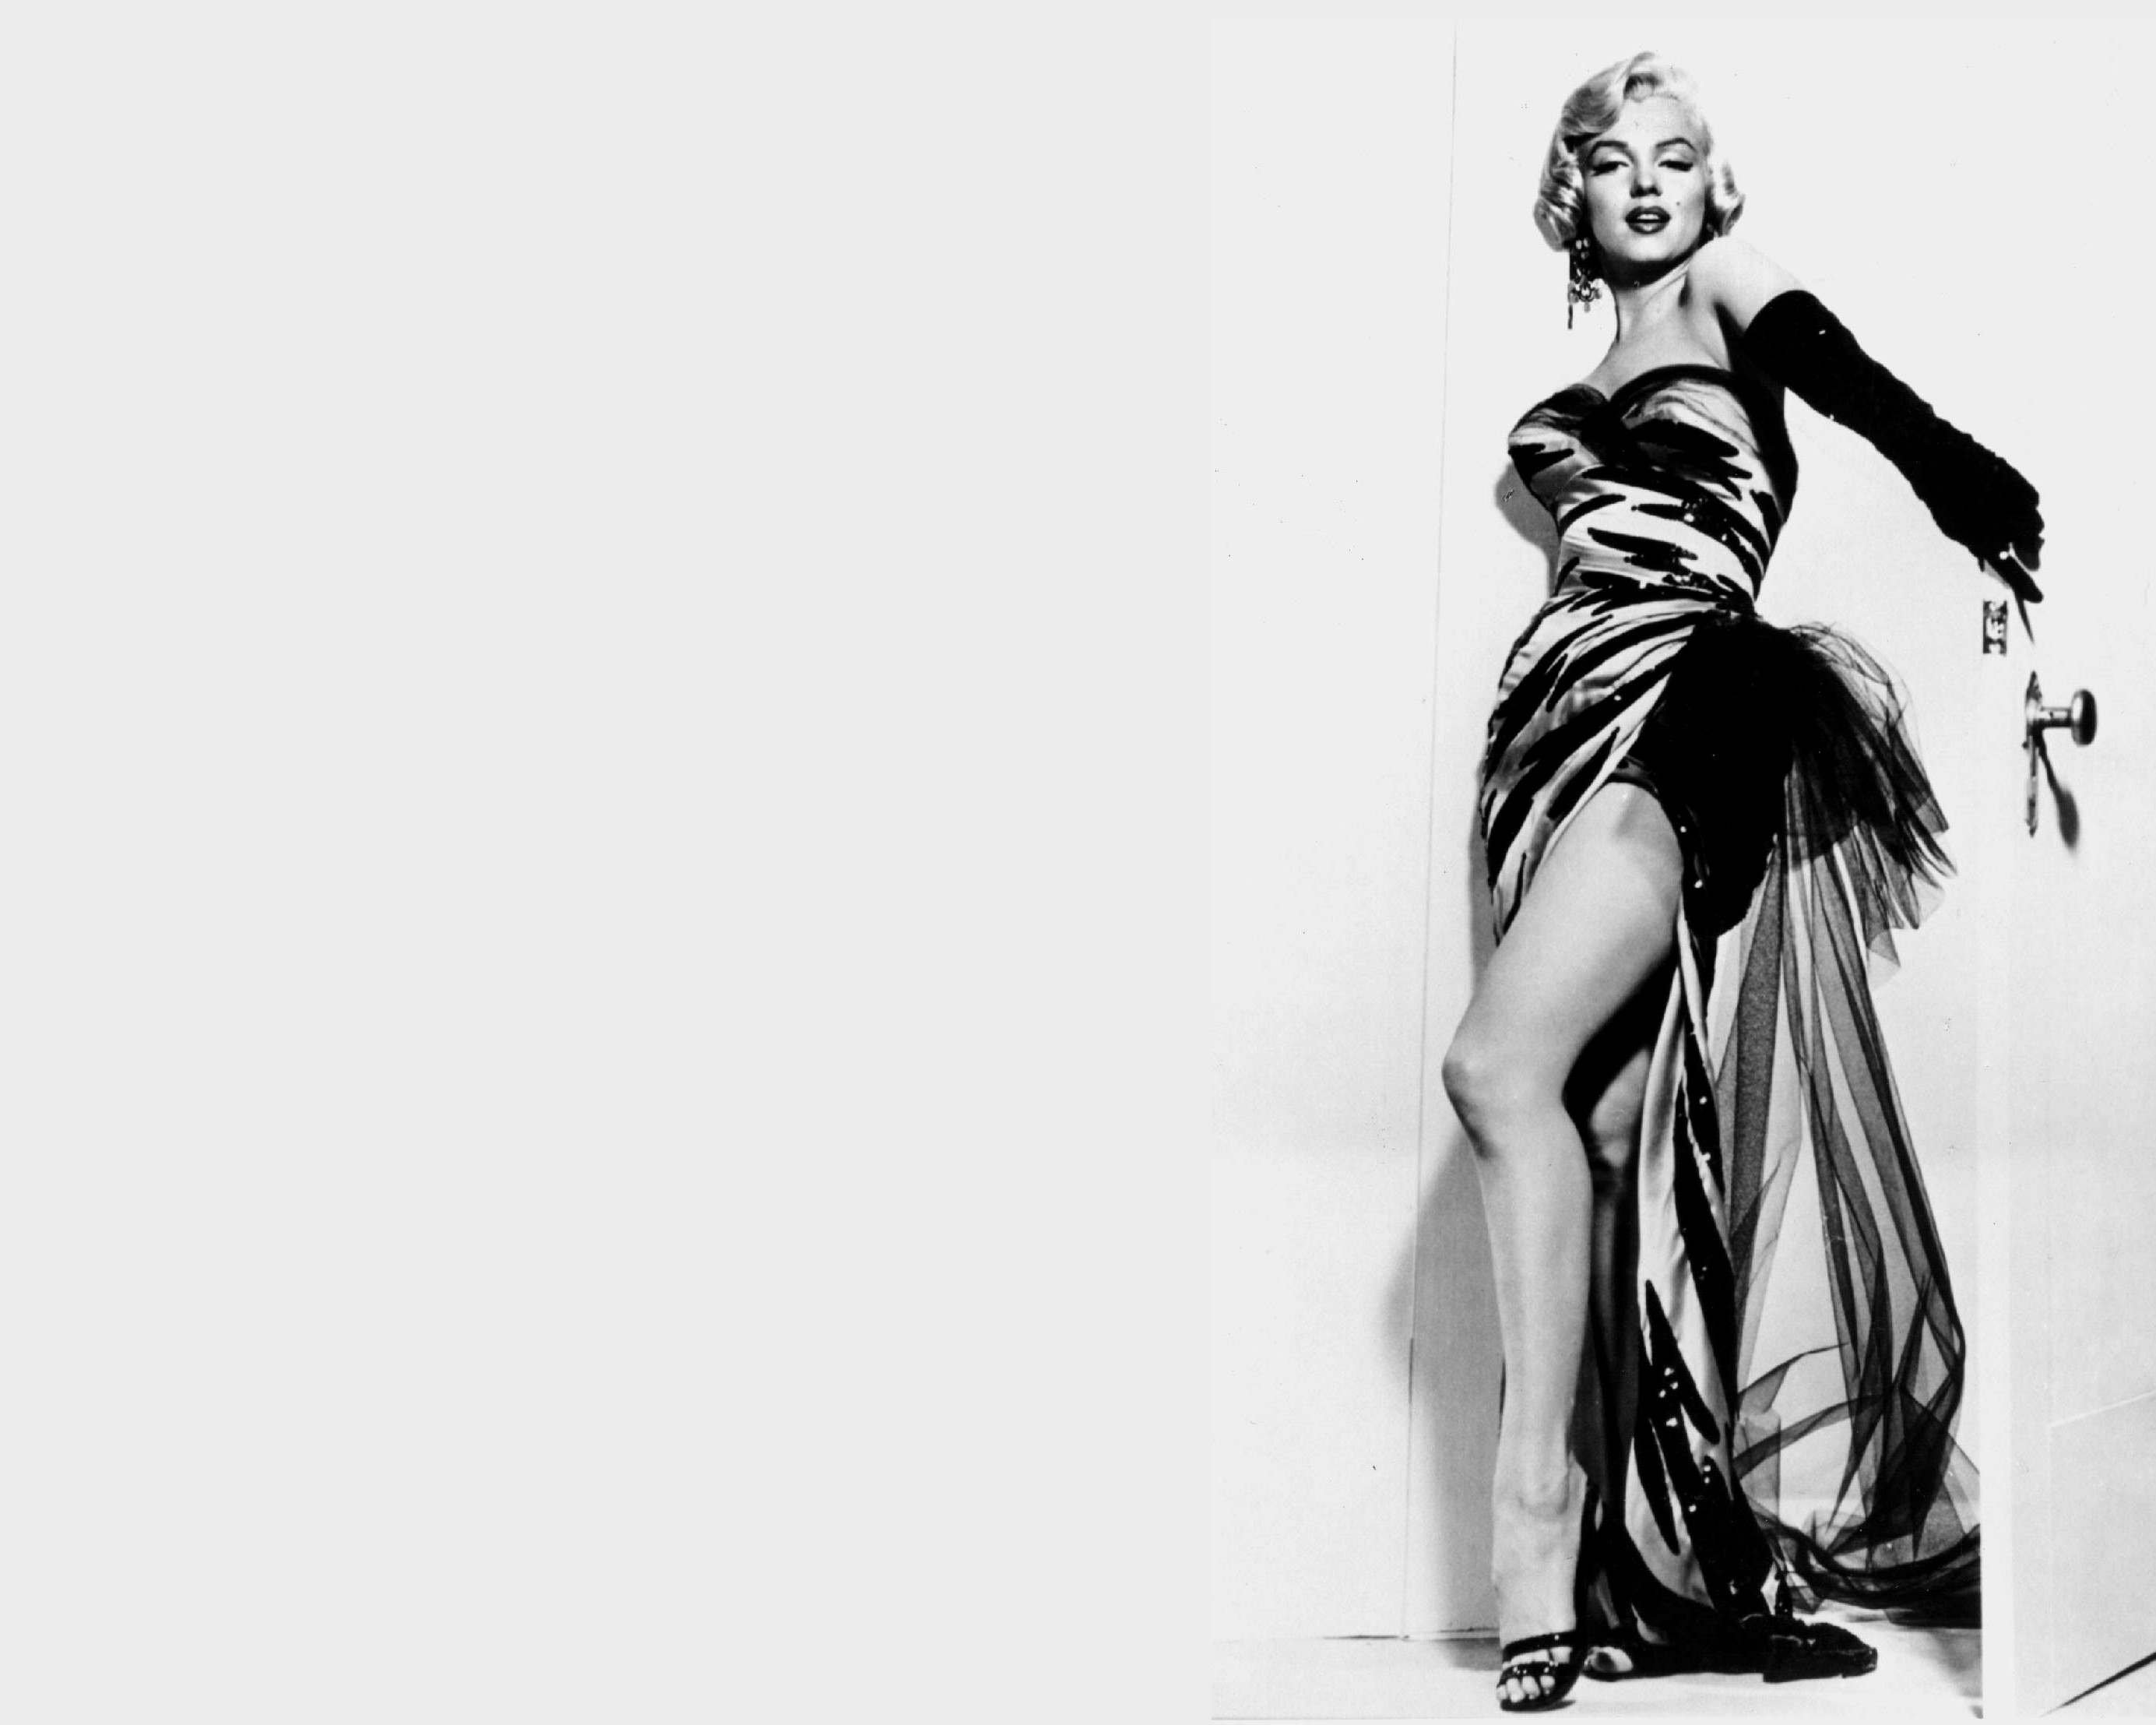 Free Marilyn Monroe Wallpapers - WallpaperSafari